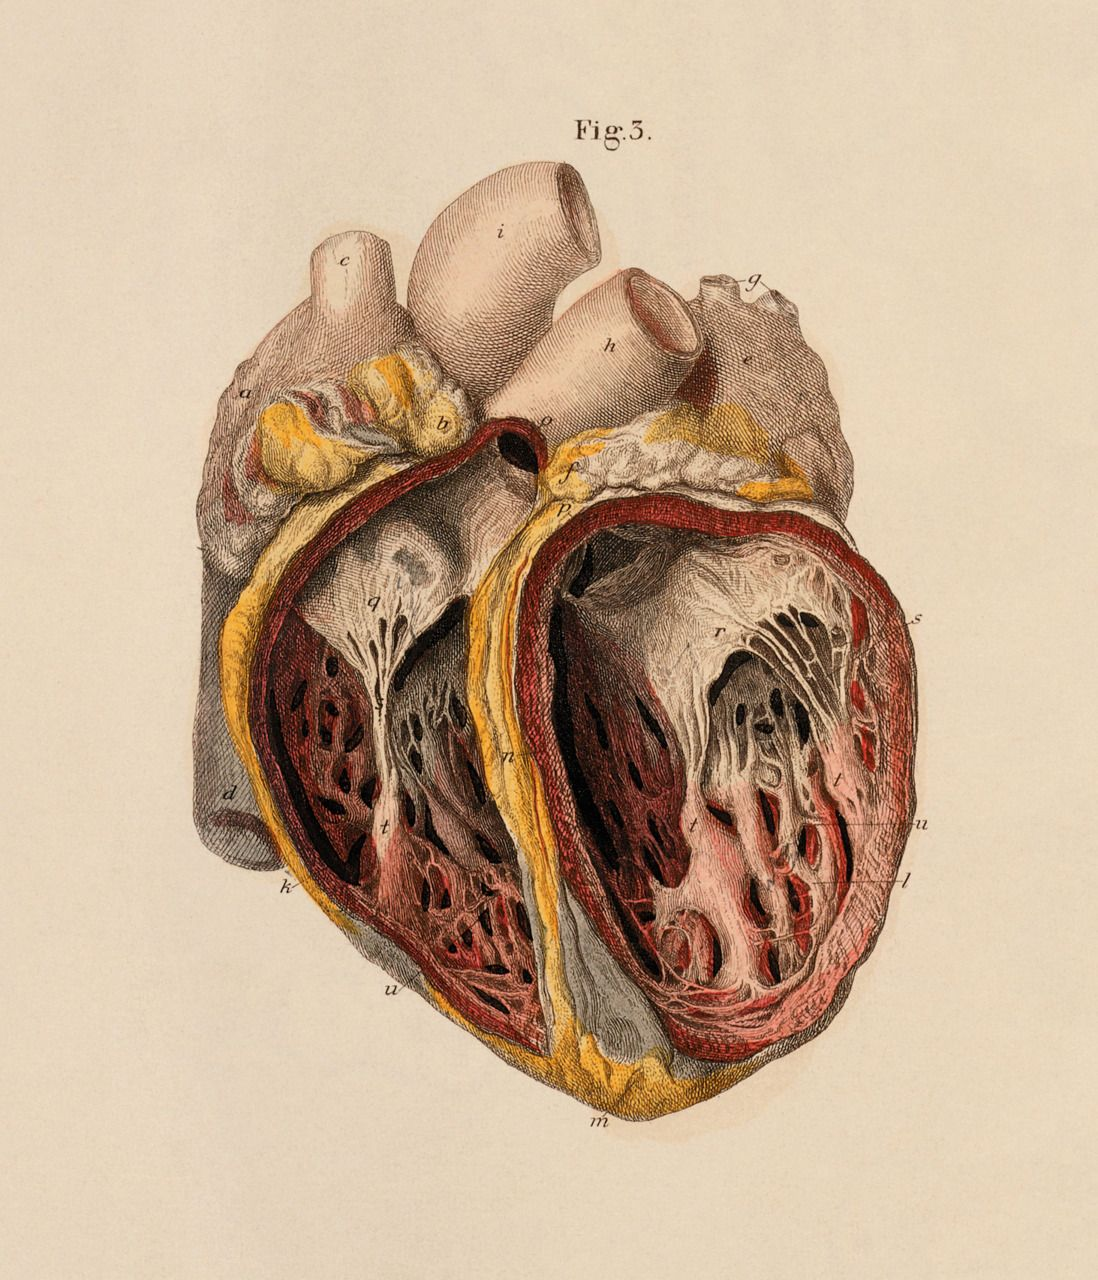 """heart: anterior view of internal cavities of the ..."